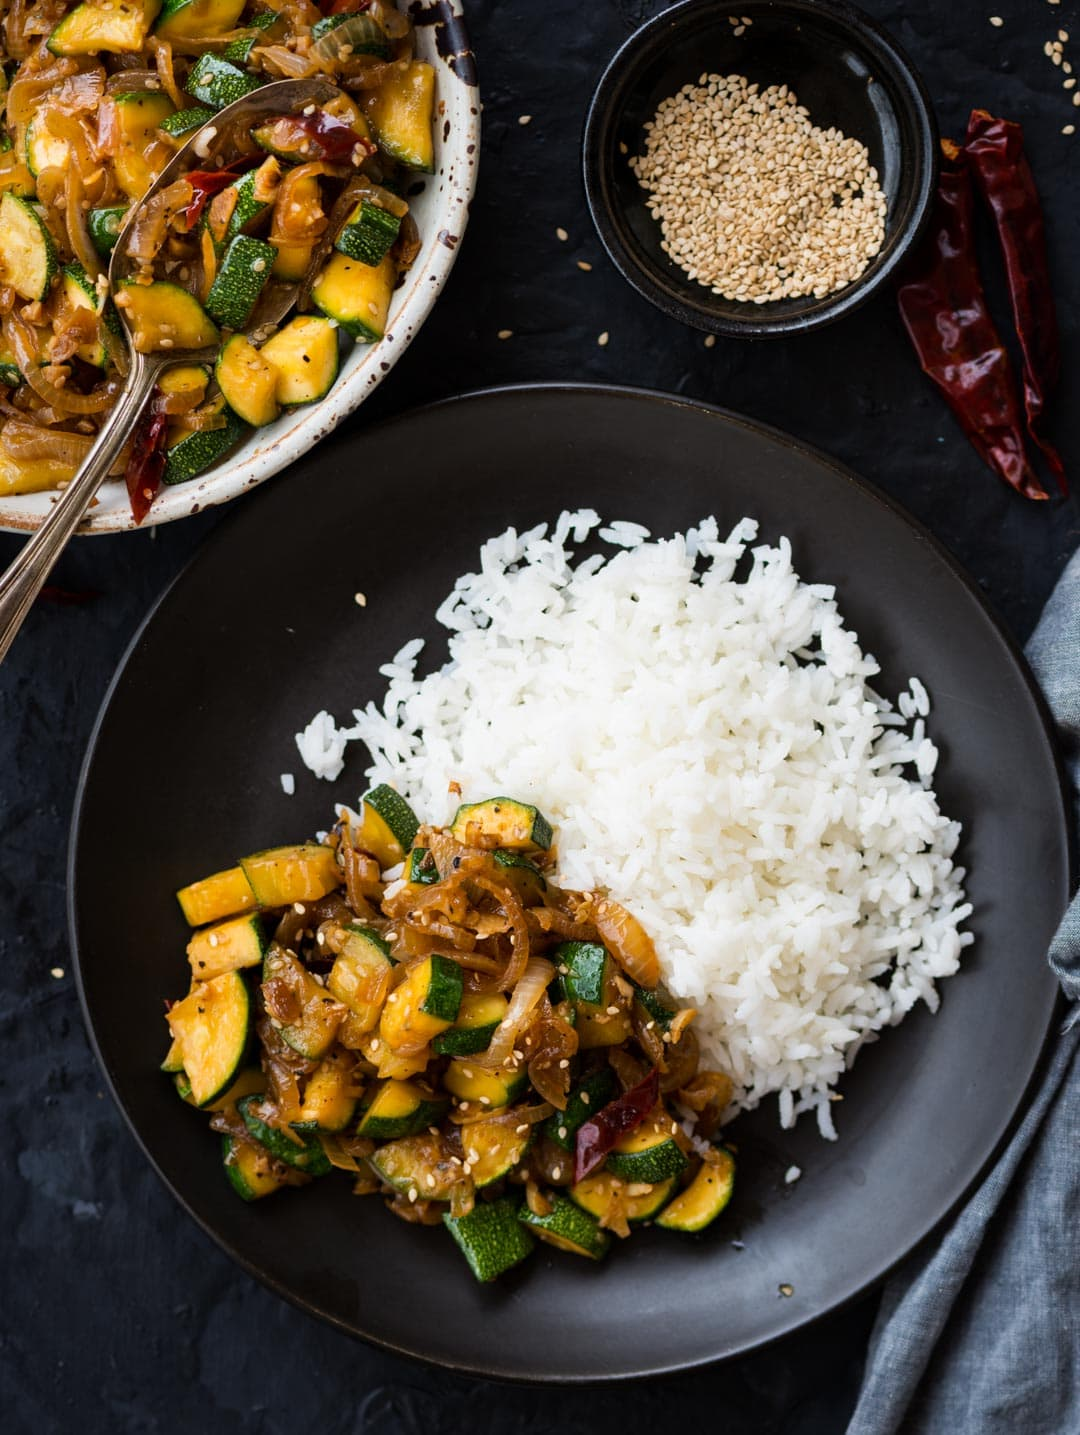 This flavour-packed Zucchini Stir Fry gets ready in 15 mins. Make this super quick stir fry with Onion, Garlic, Zucchini tossed in a simple sauce.